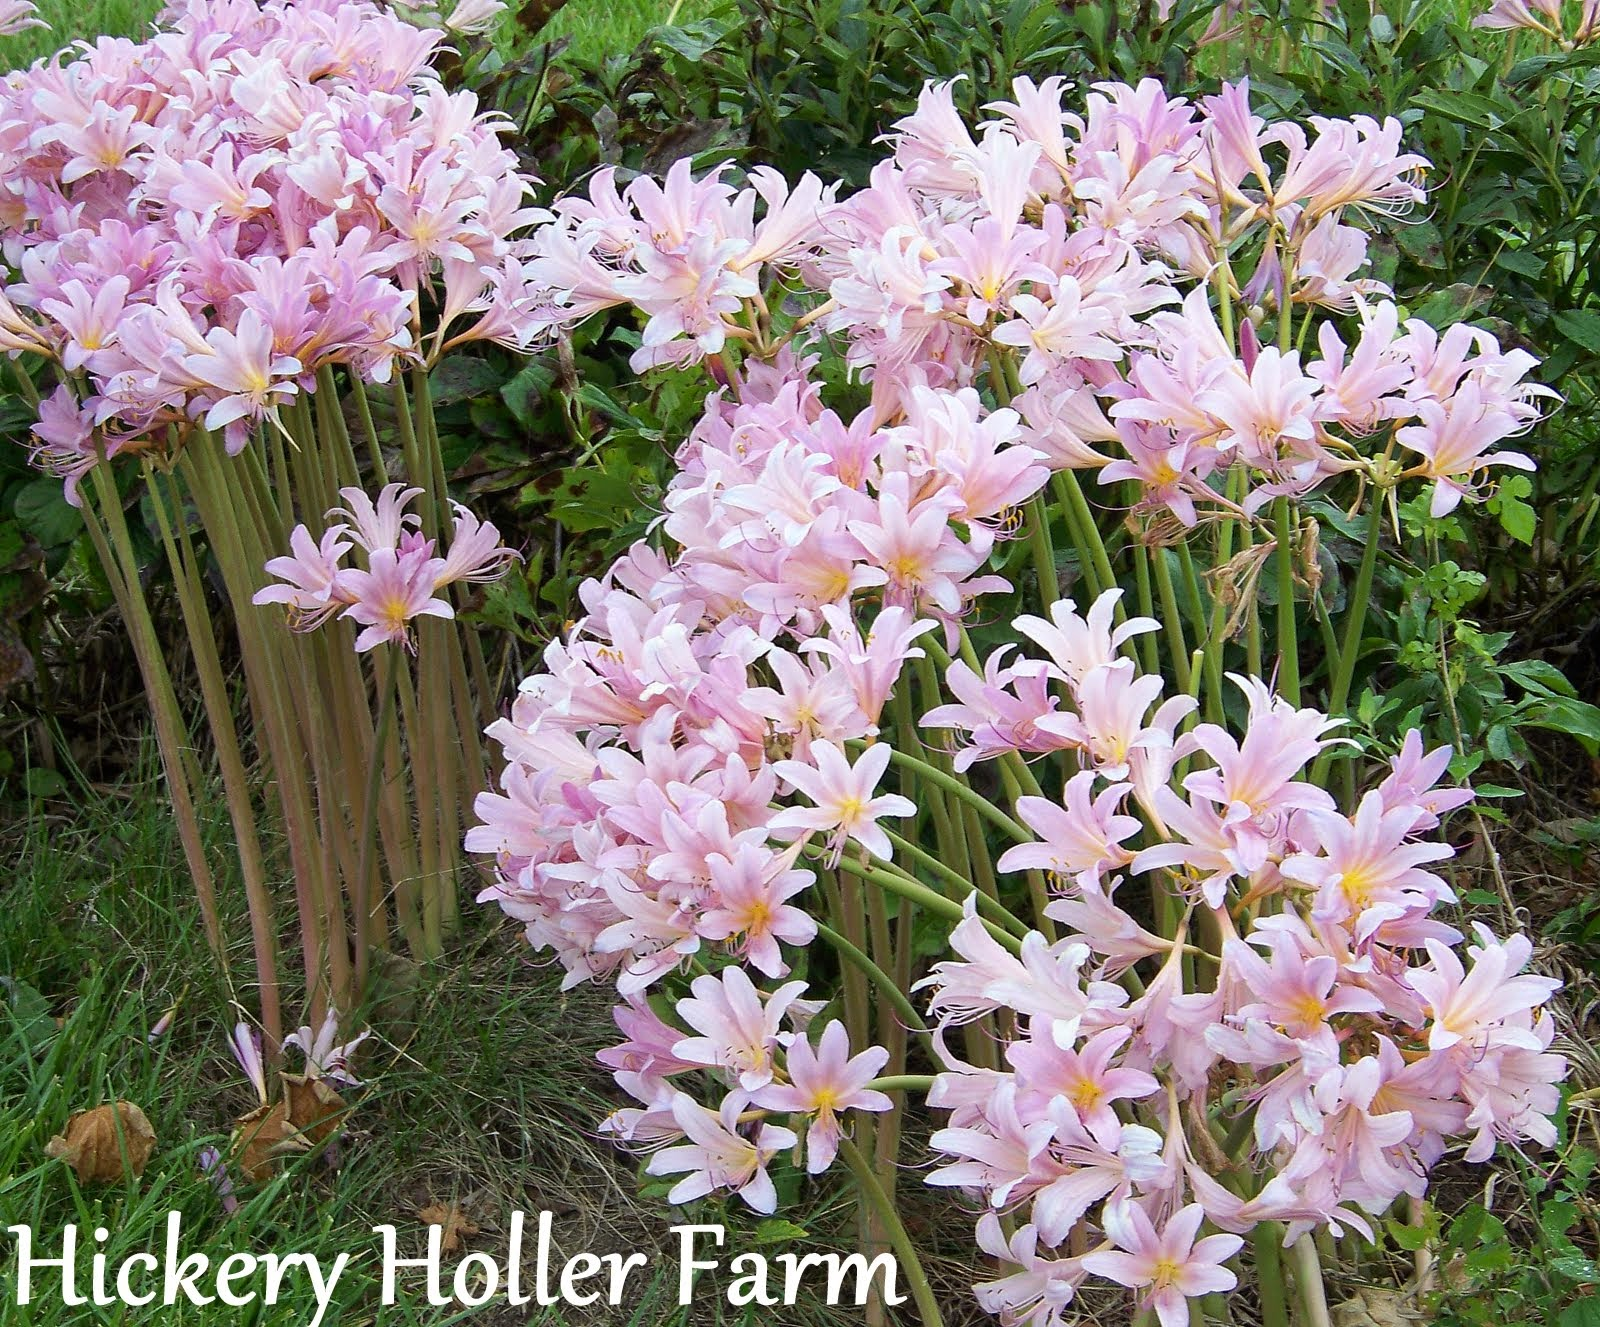 Hickery Holler Farm: Naked ladies Oh My!